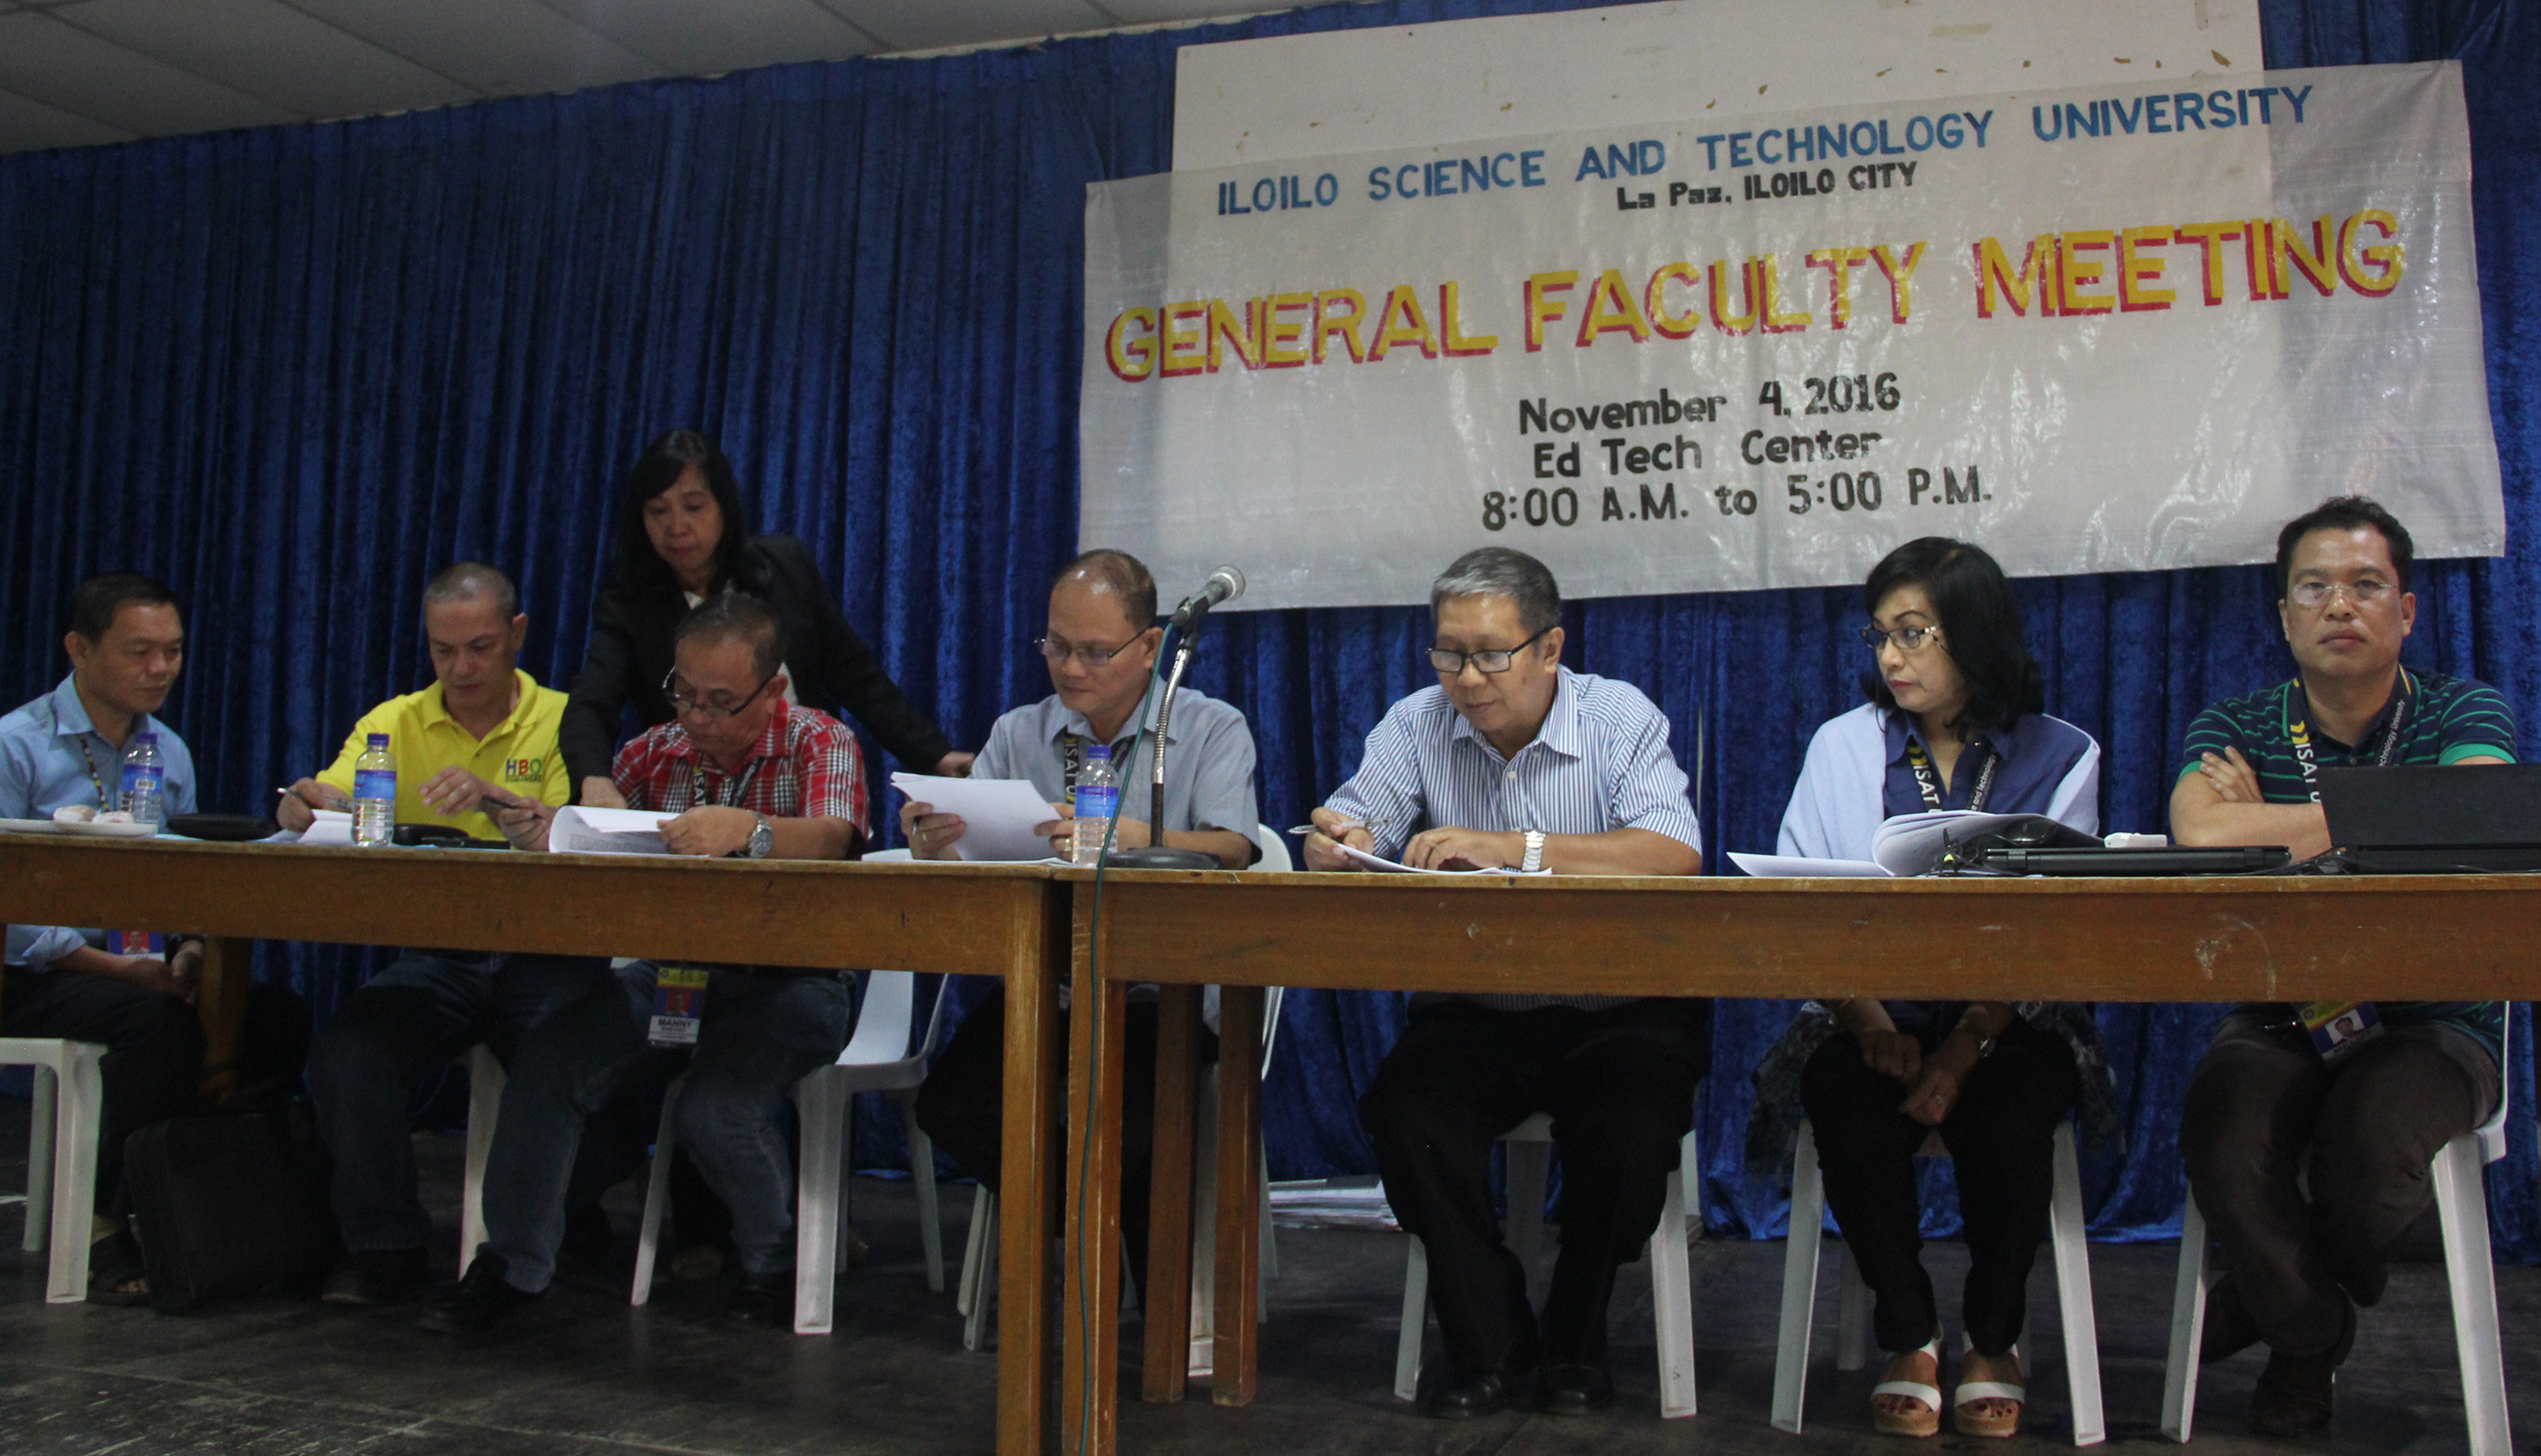 Top university officials witness the signing of the collective negotiable agreement (CNA).